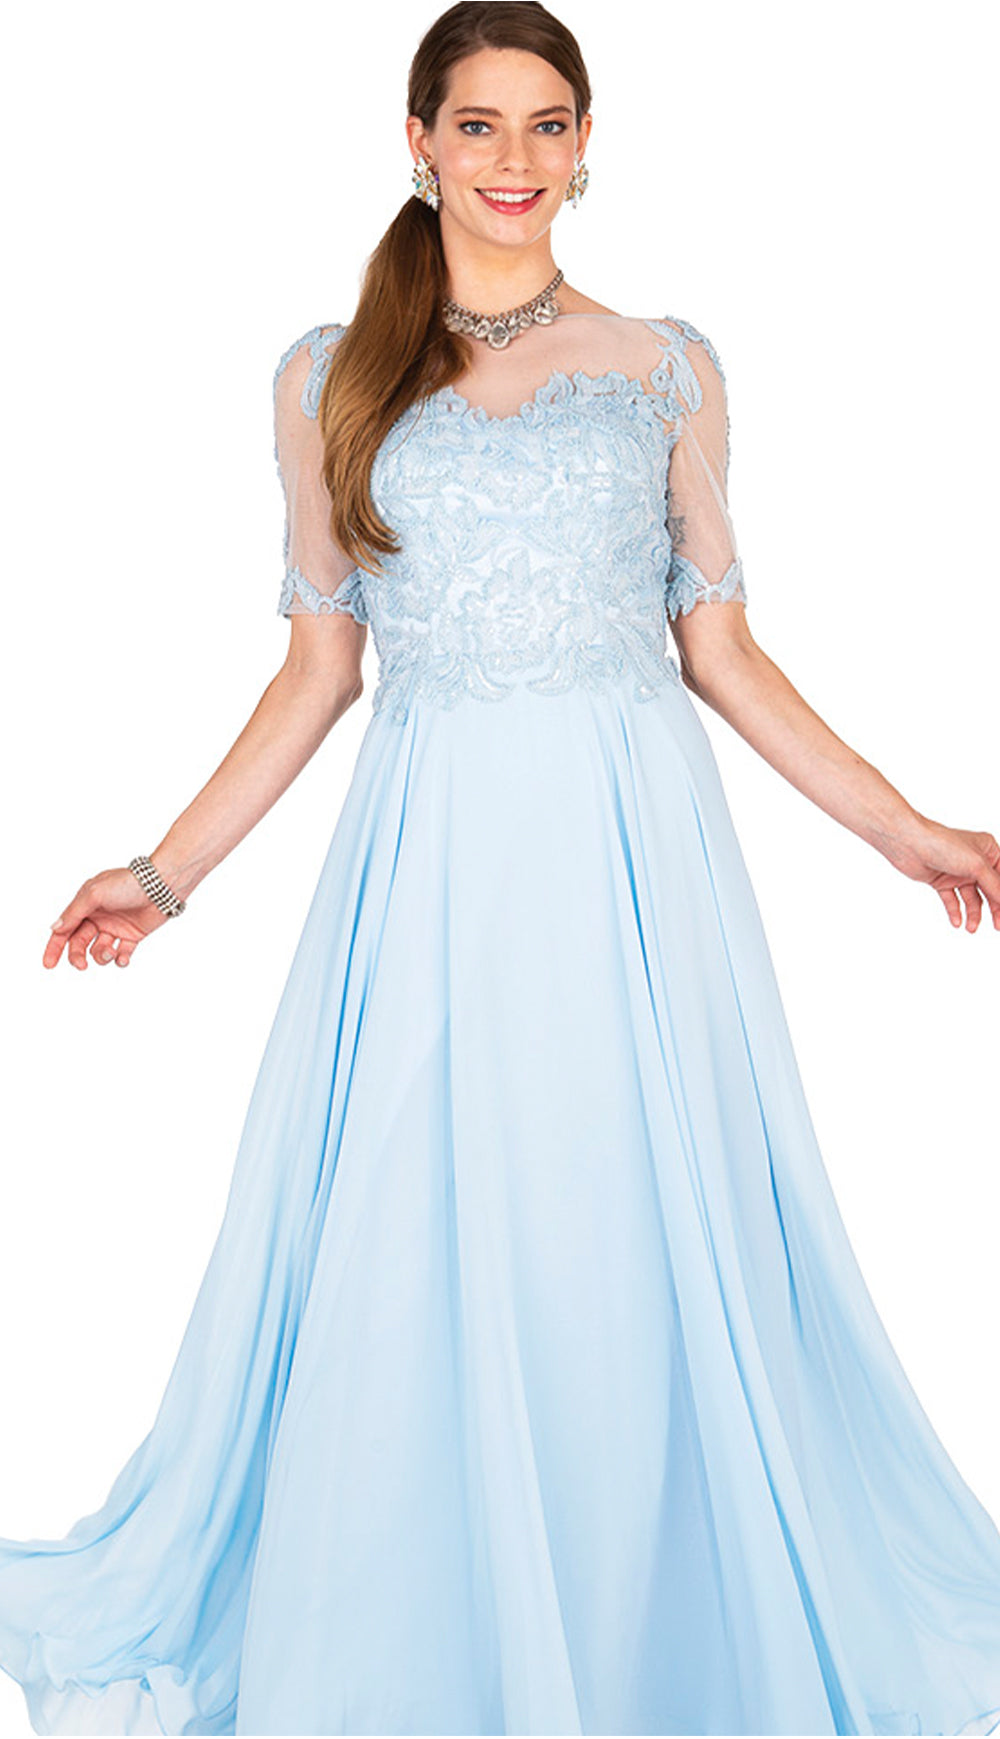 Champagne Italy Dress 5413-Light Blue - Church Suits For Less